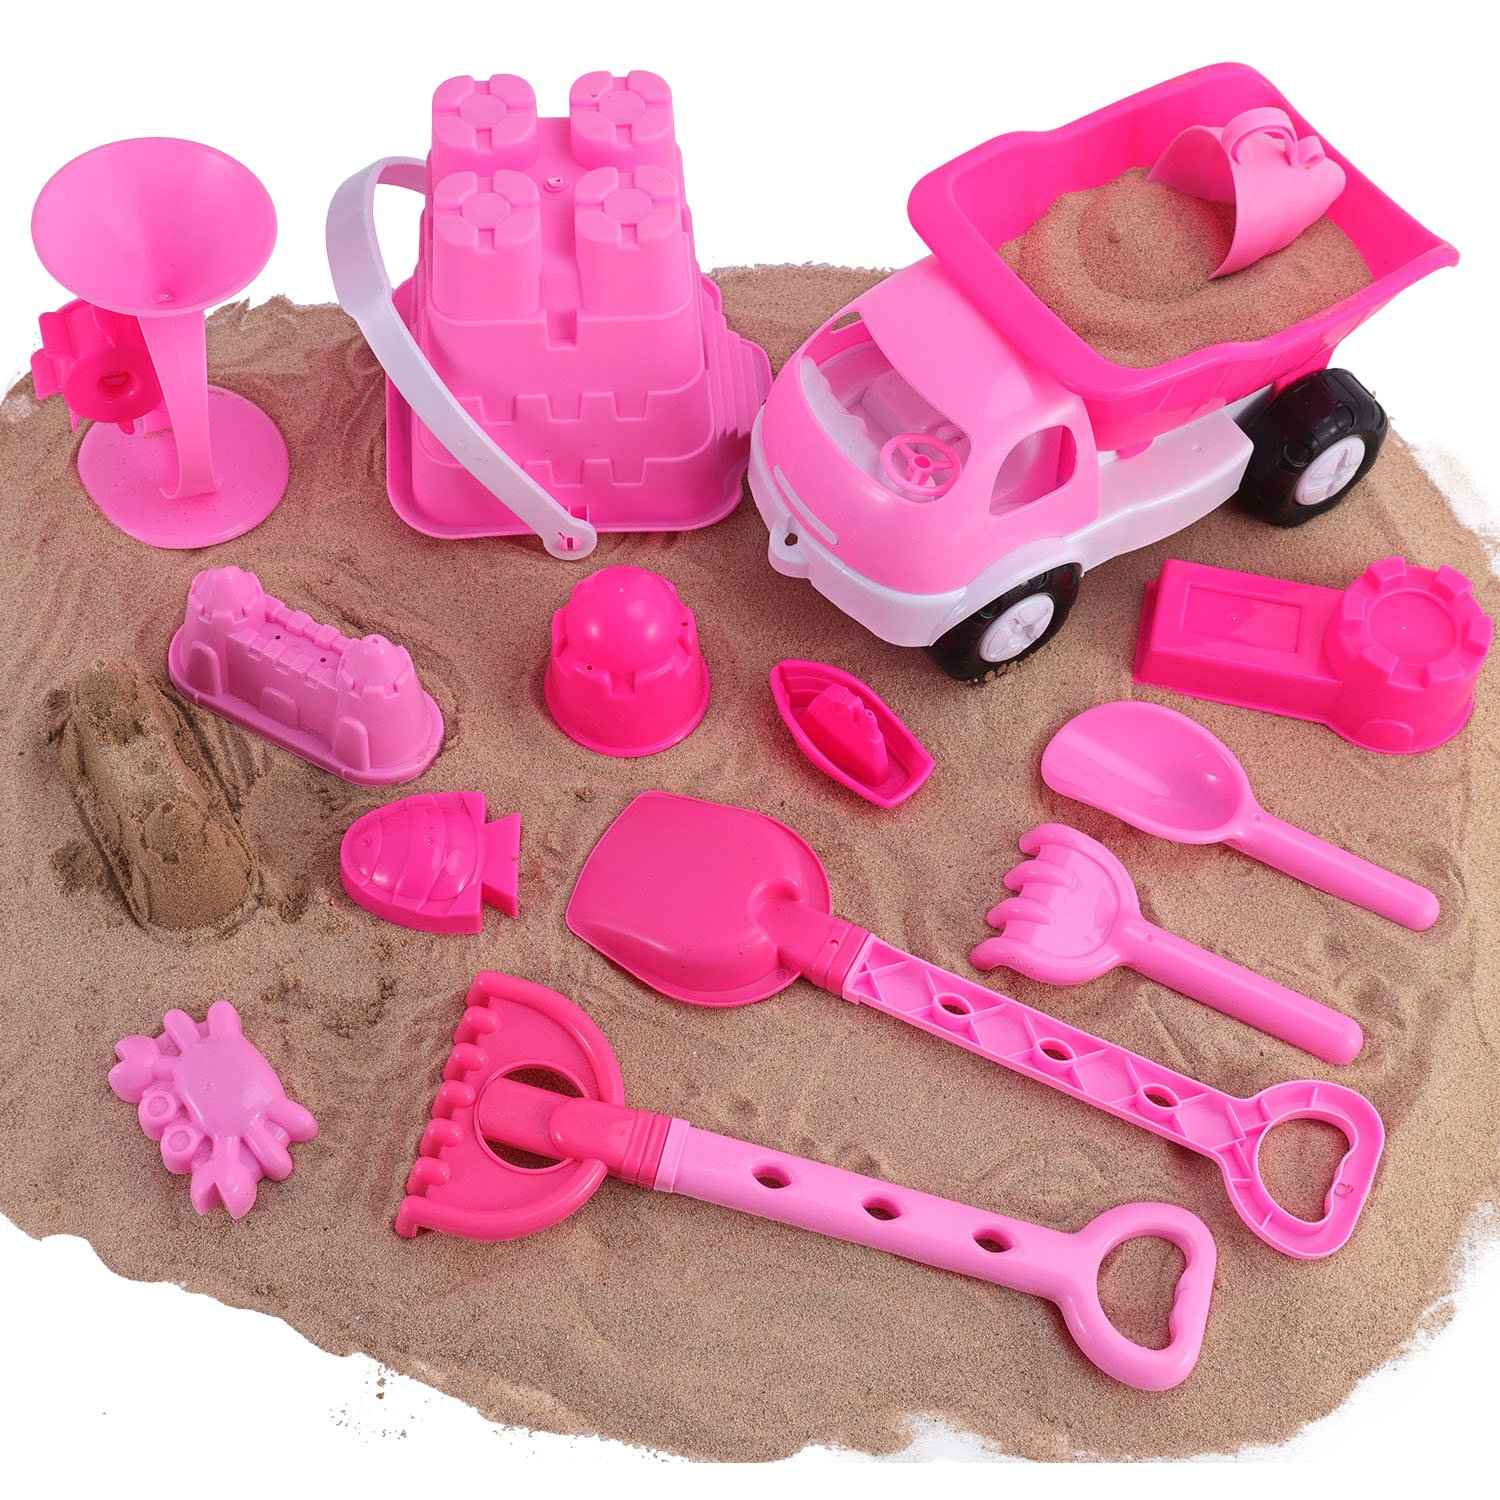 Liberty Imports Pink Princess Castle Beach Set Toy for Girls - Includes Dump Truck, Sand Wheel, Bucket, Play Tools and Molds (14 Pcs Playset)